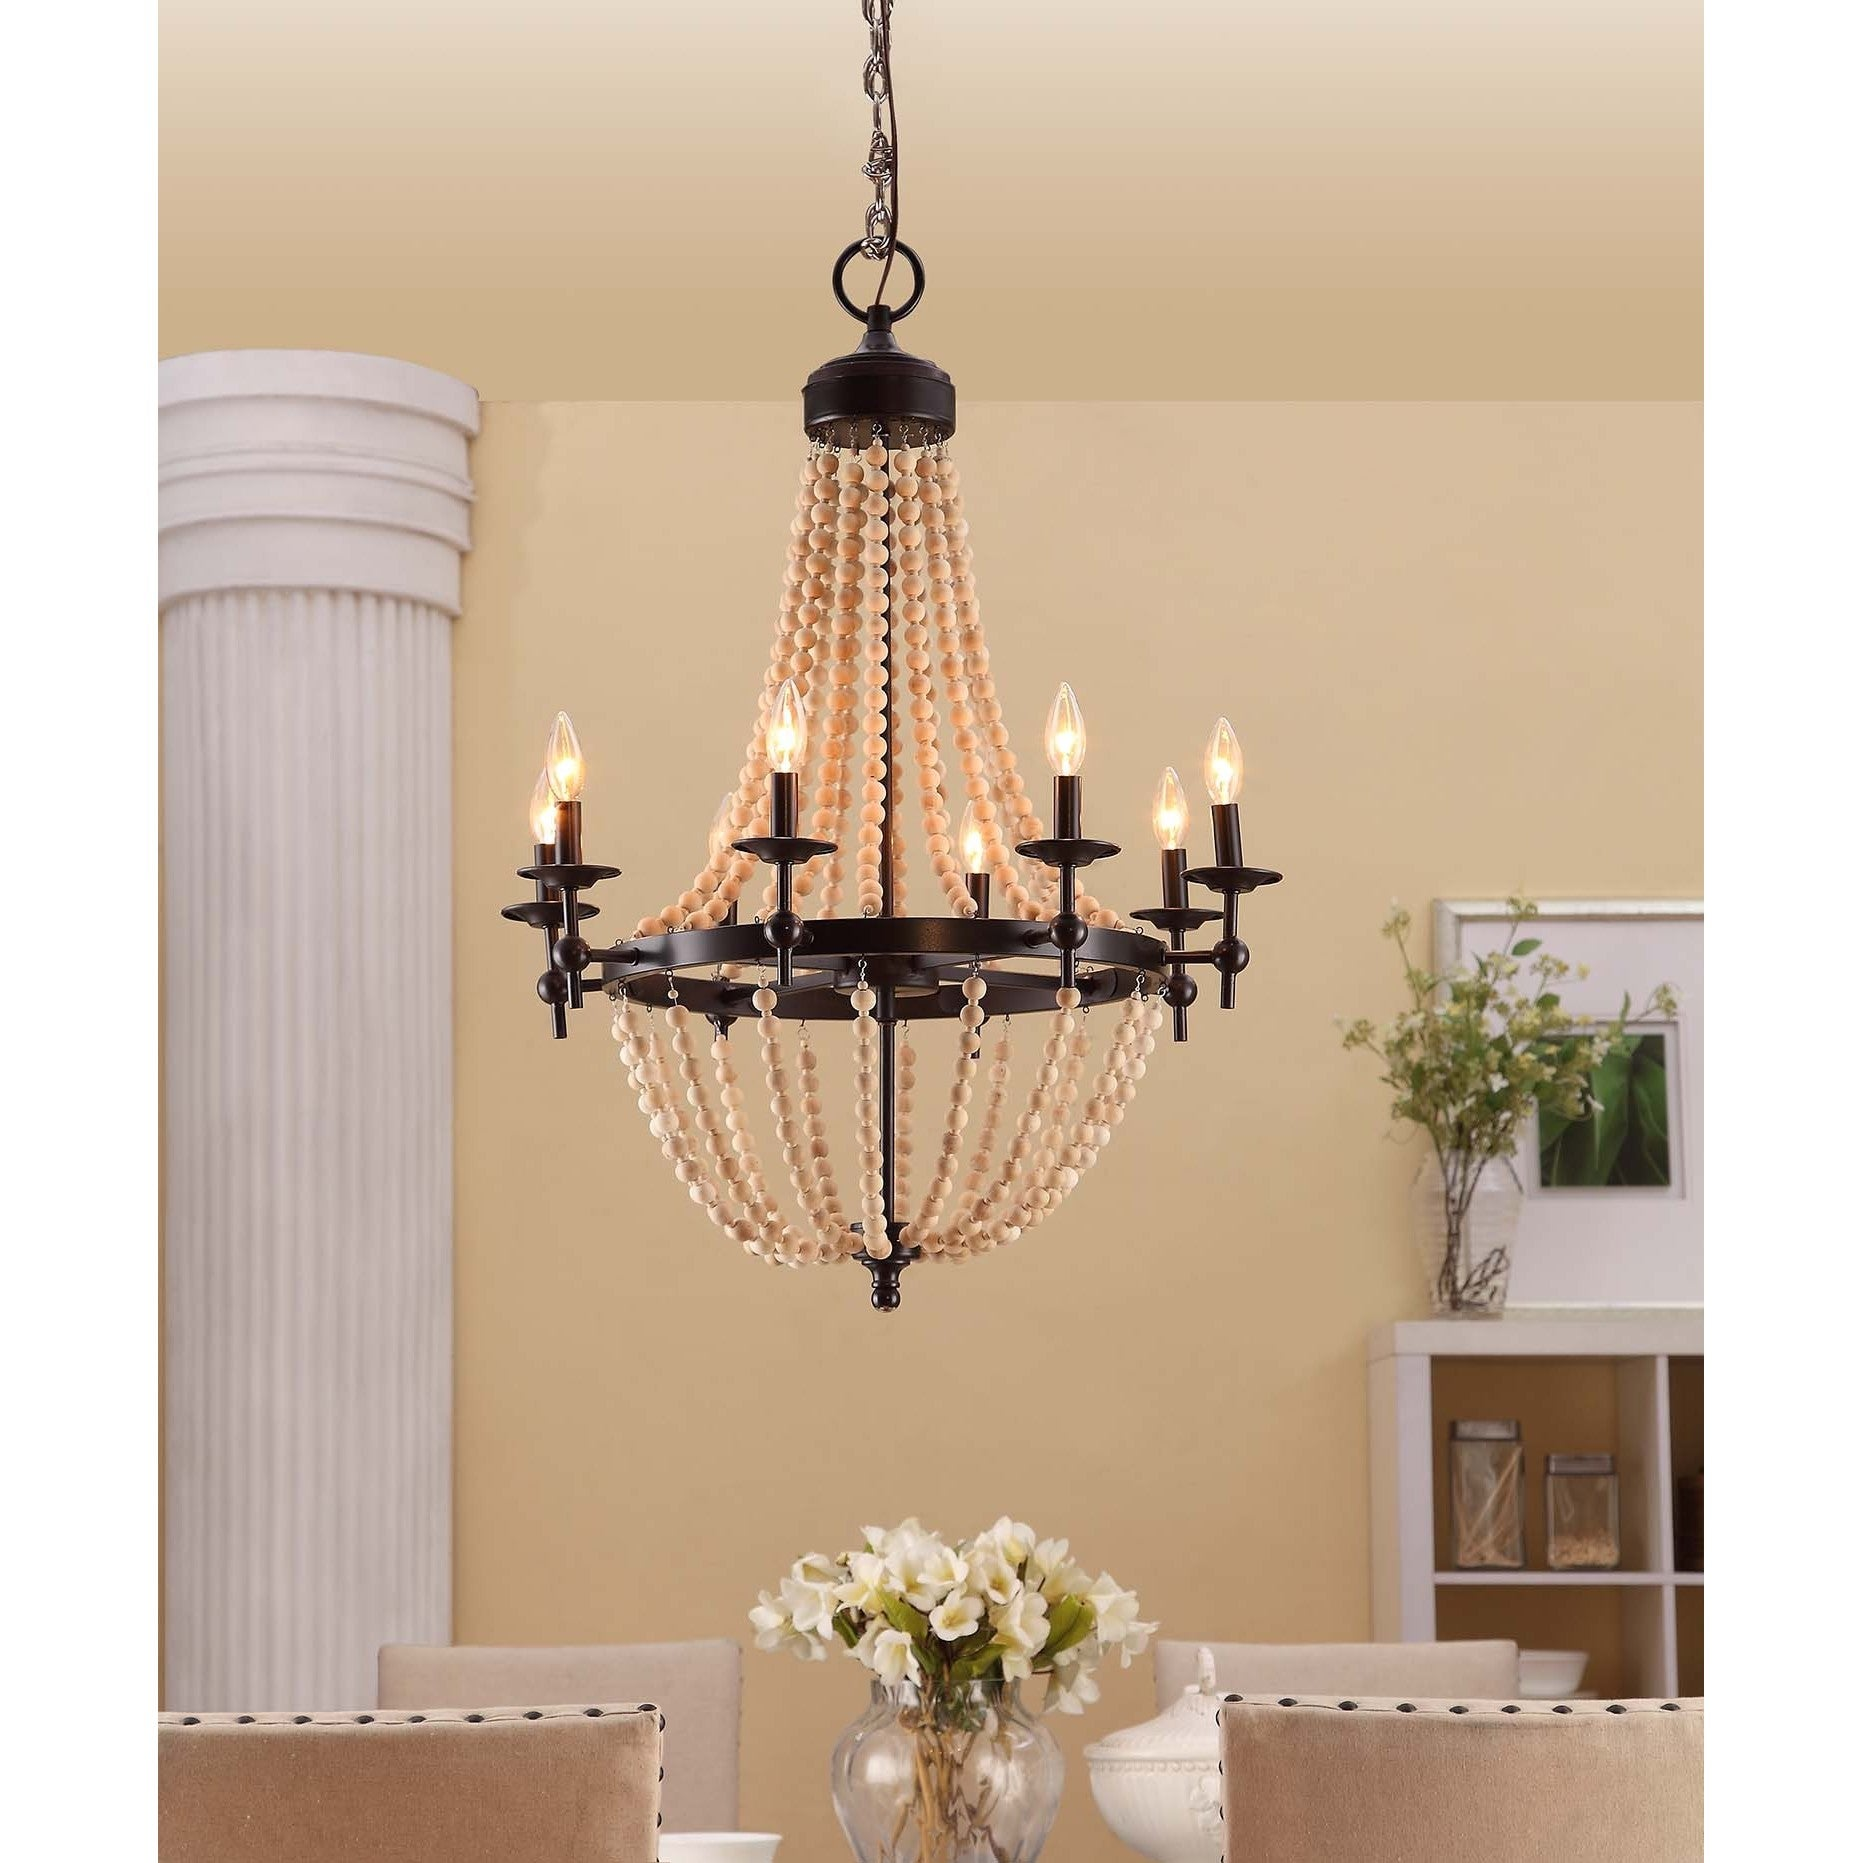 Fancy Farmhouse Chandelier Natural Beaded Black 8 light Foyer